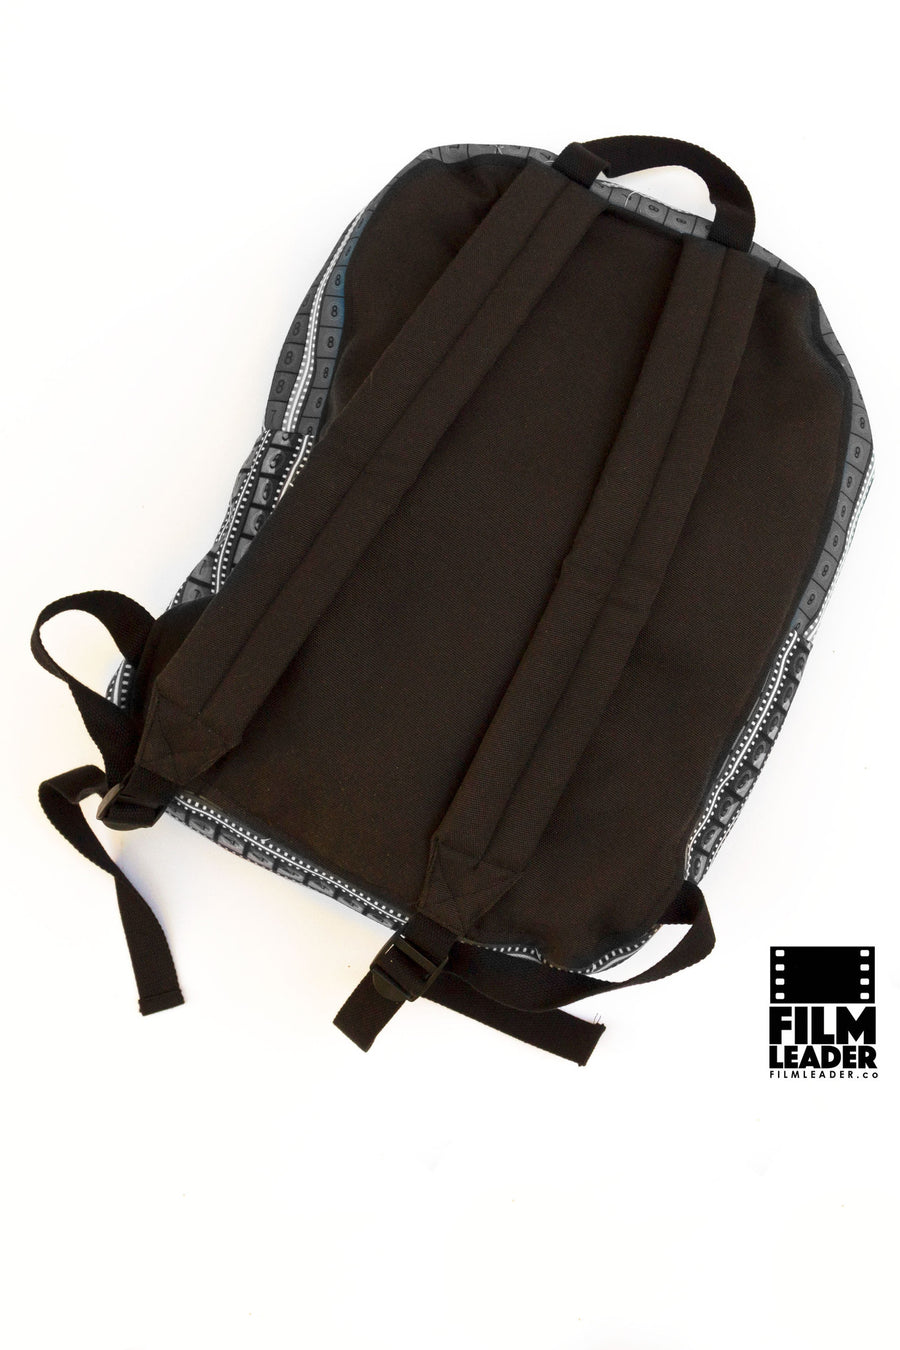 Backpack with Vertical B&W 35mm Countdowns on White (Tight Stripe)